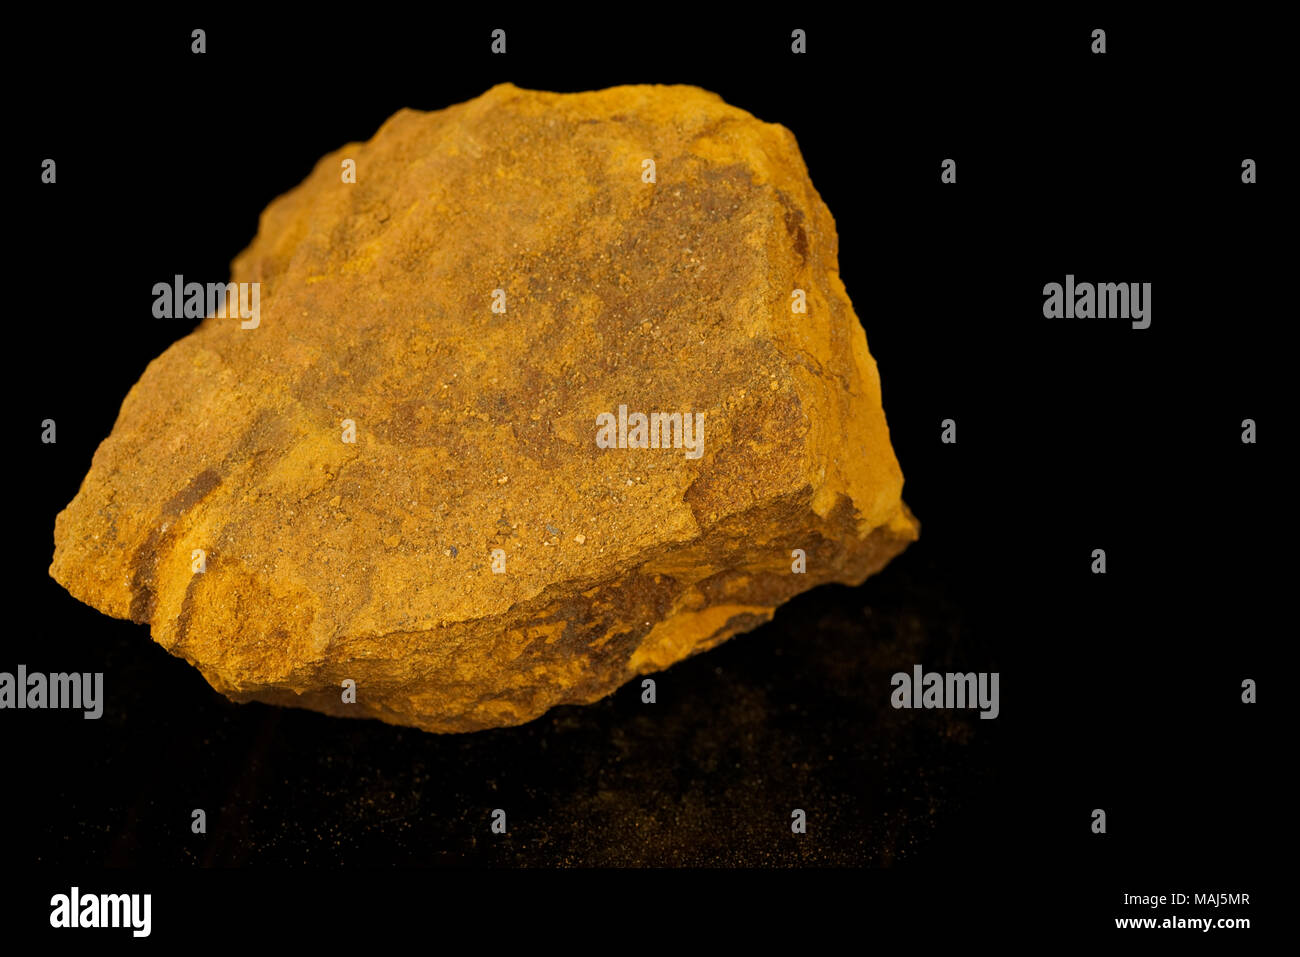 Limonite, iron ore mineral, iron oxide-hydroxide, amorphous, mineraloid, fine grained aggregate with powdery coating isolated on black background. Ear - Stock Image